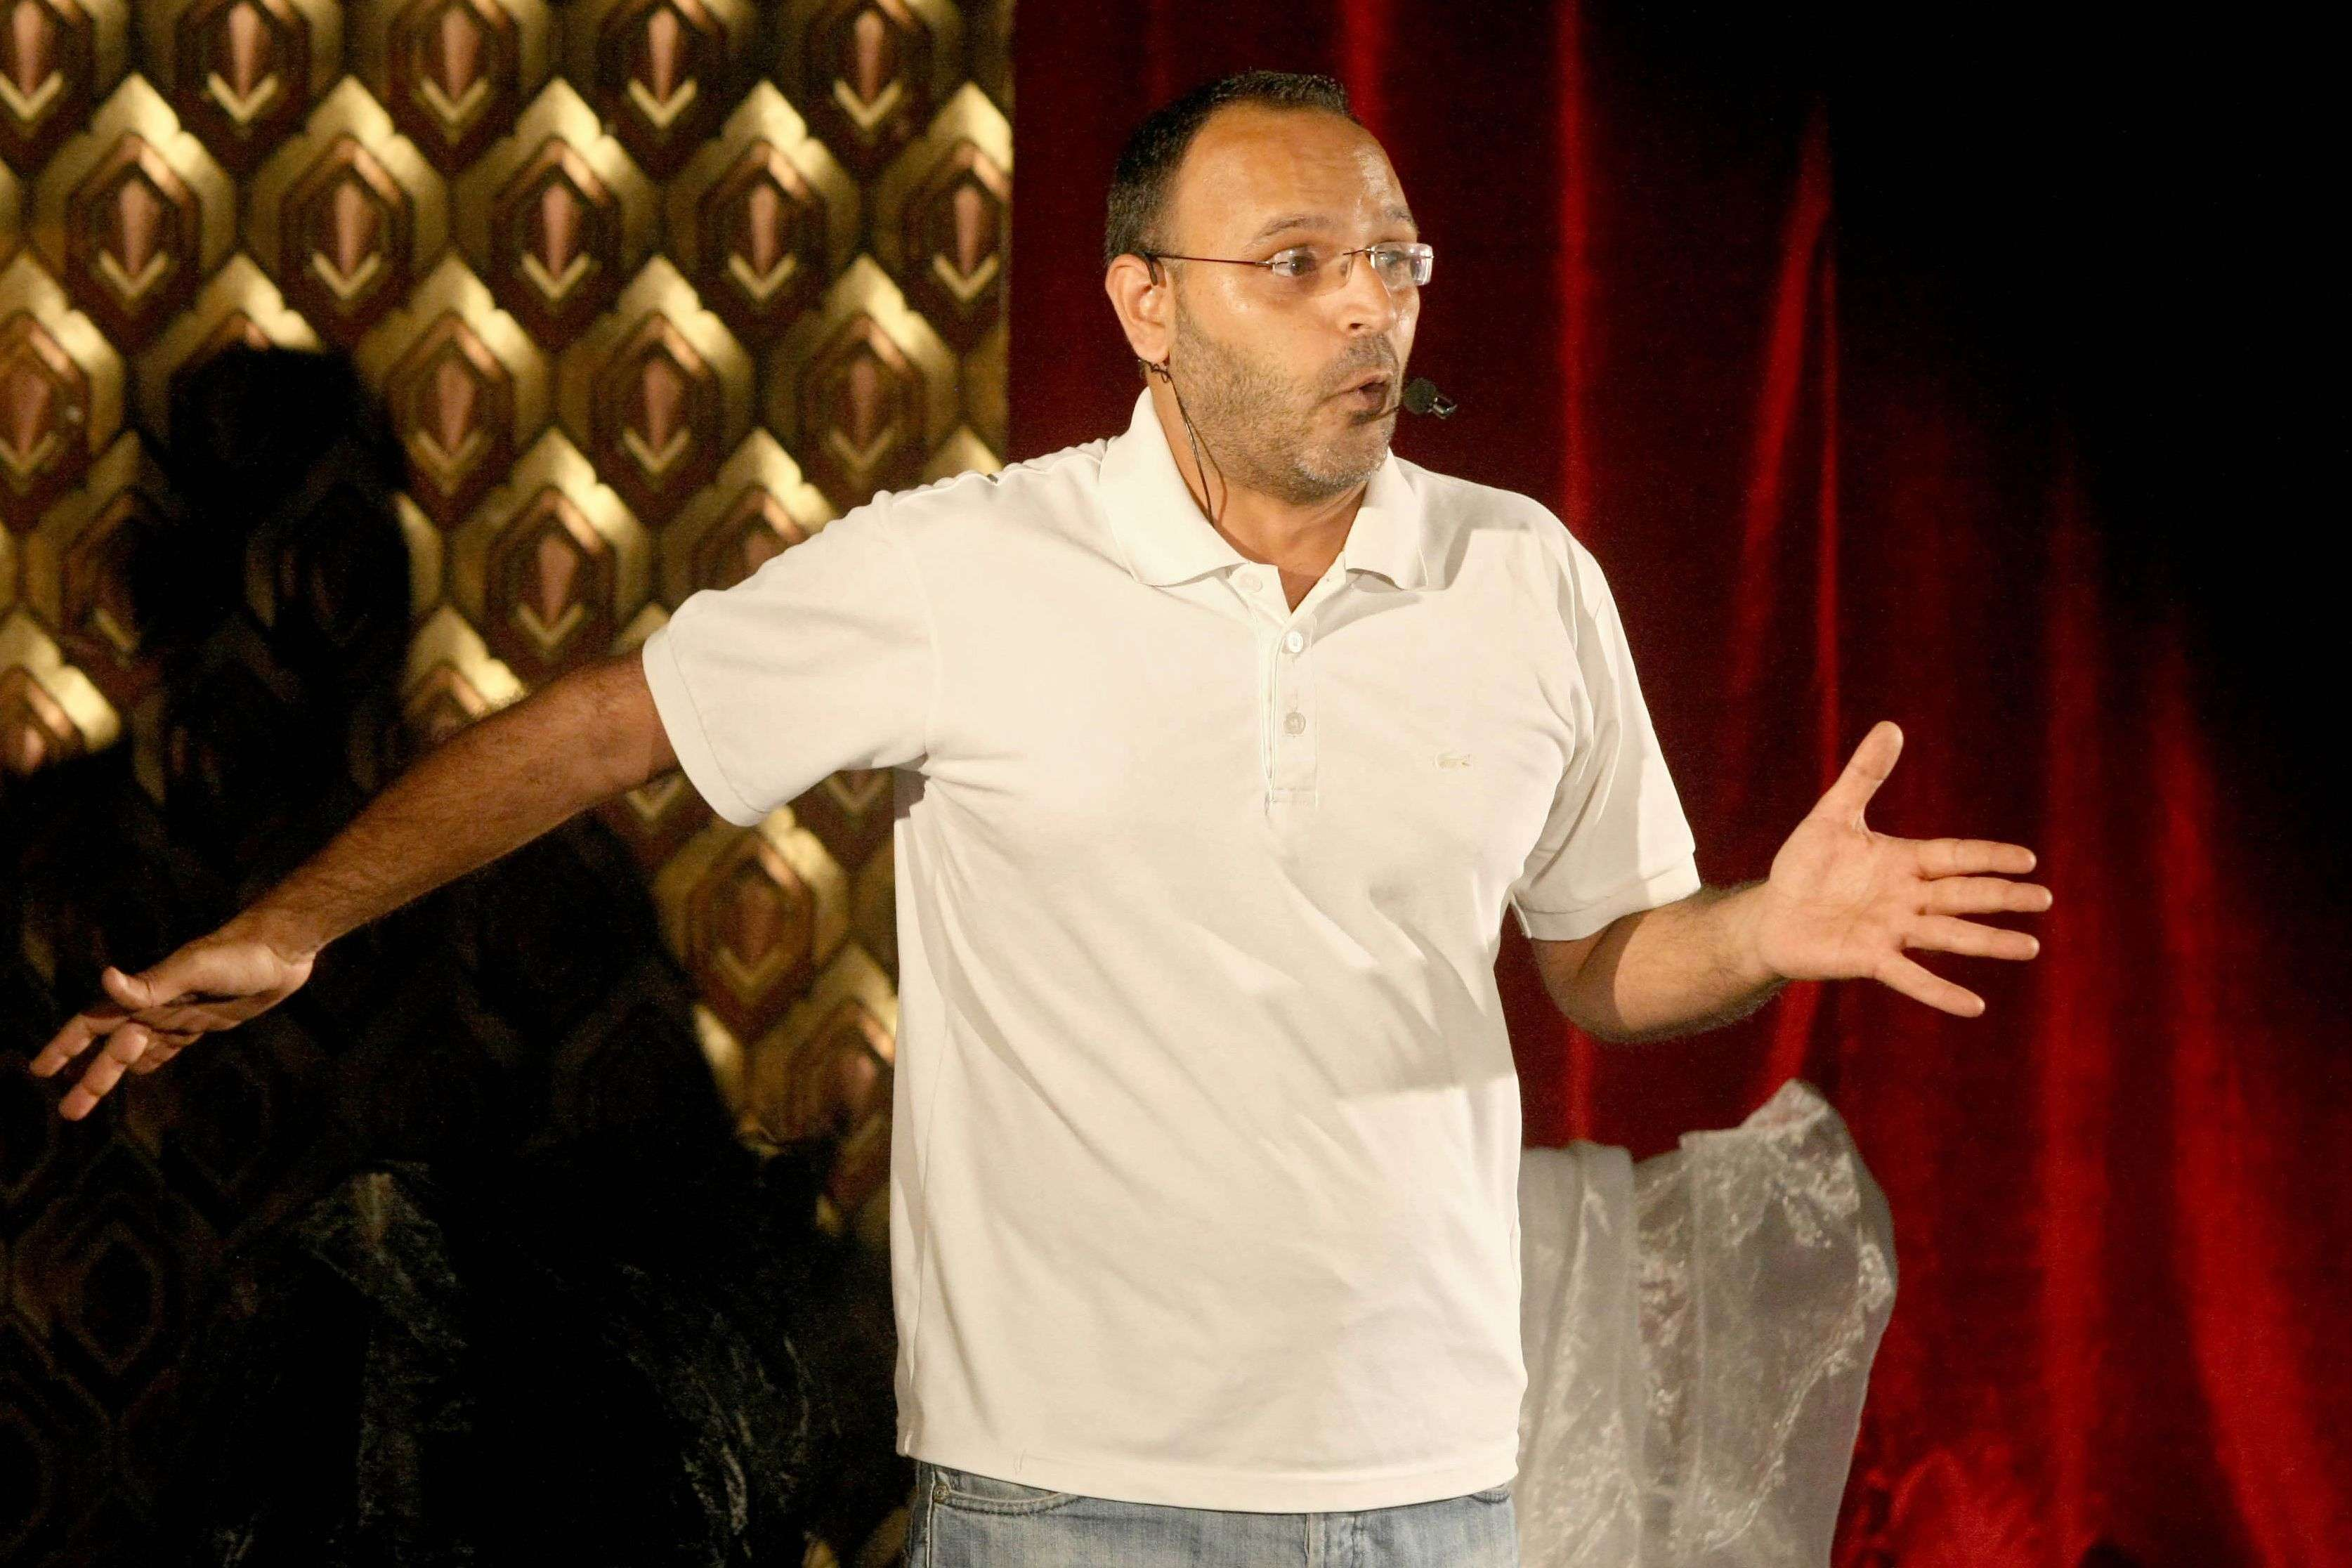 Lebanese writer and actor Ziad Itani performing on stage in the capital Beirut. (AFP)